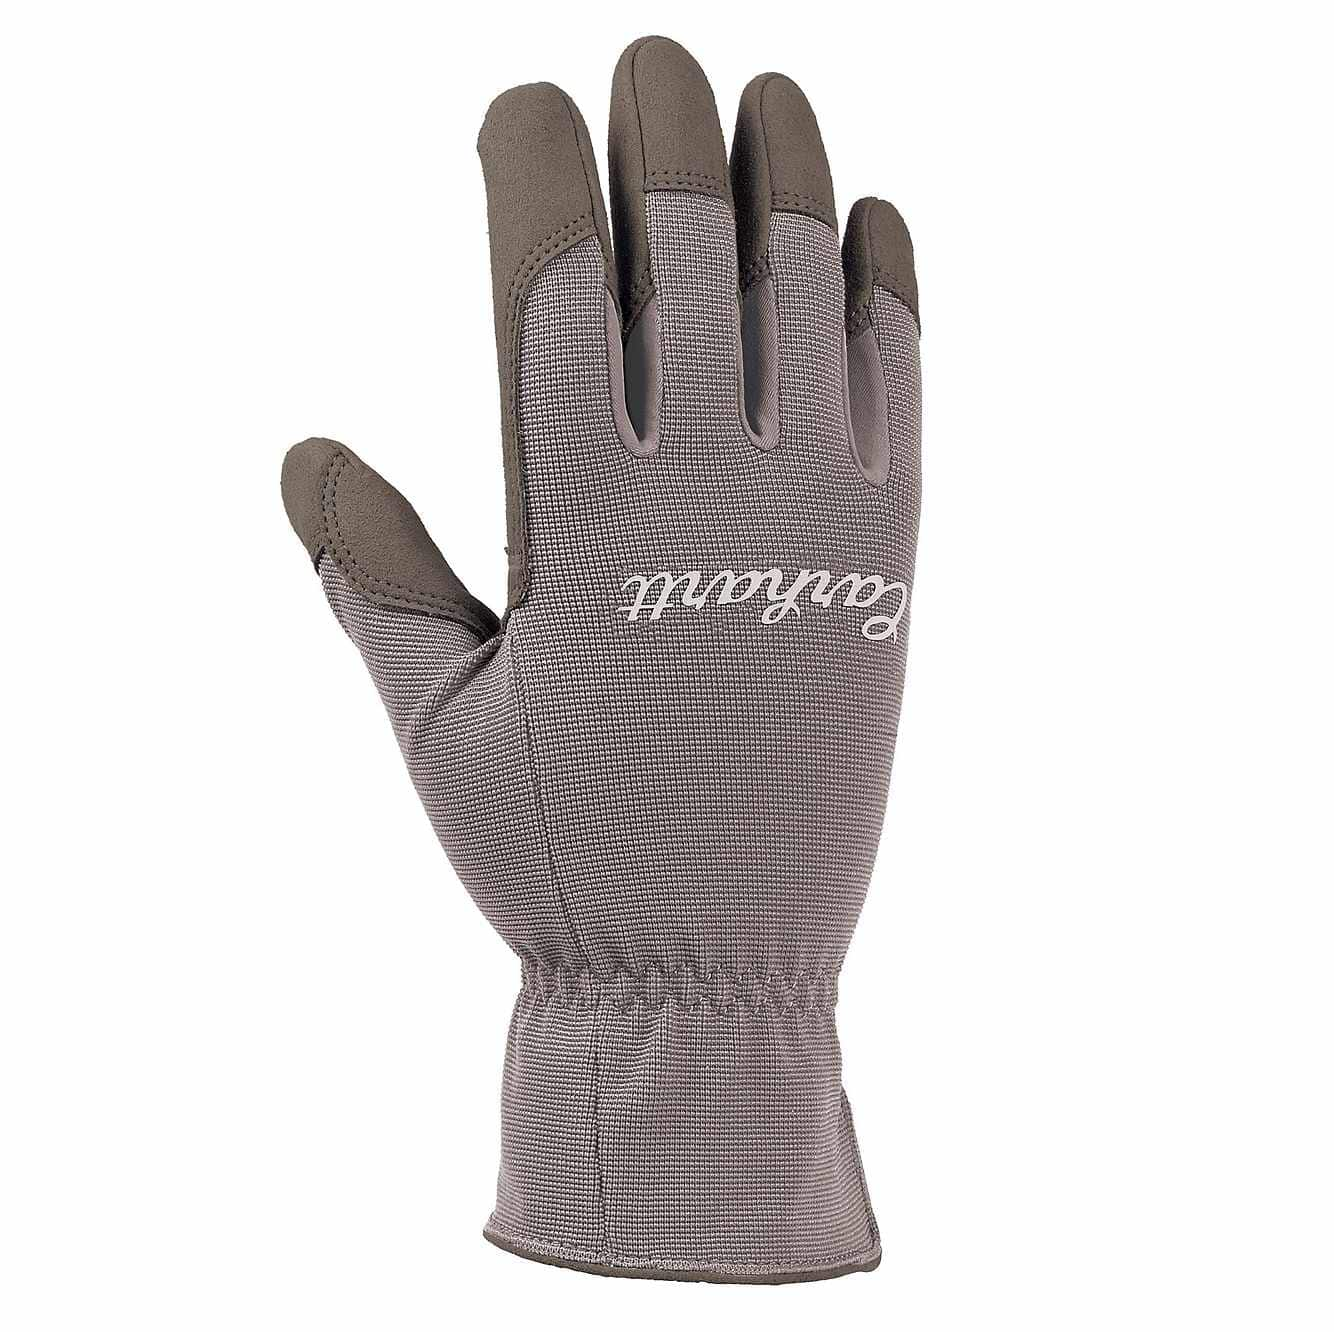 Picture of Perennial Work Glove in Gull Gray